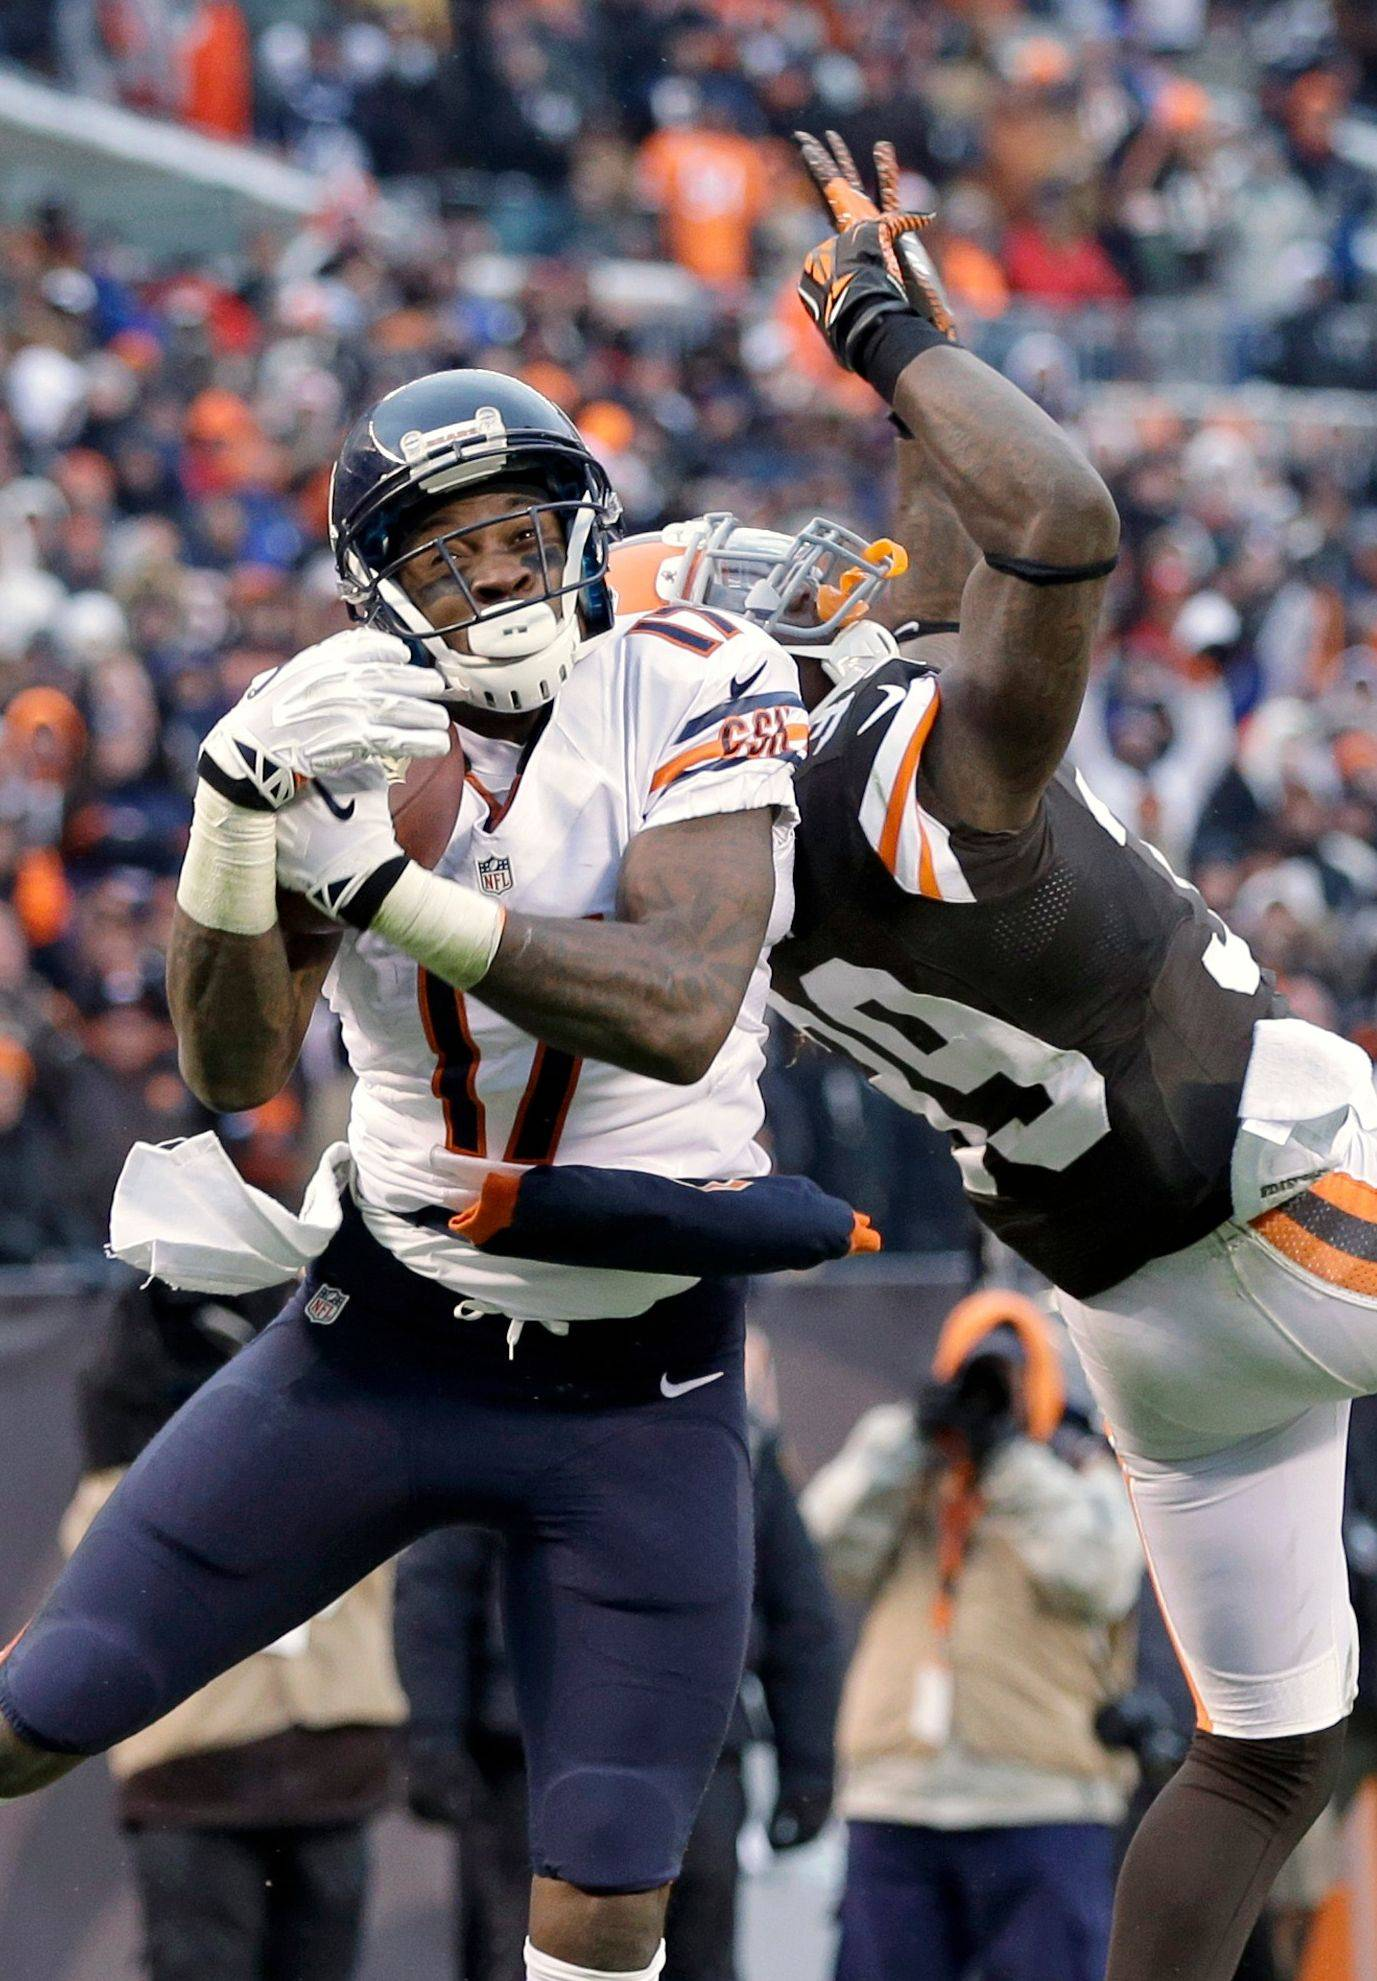 Another big Jeffery catch in big situation for Bears